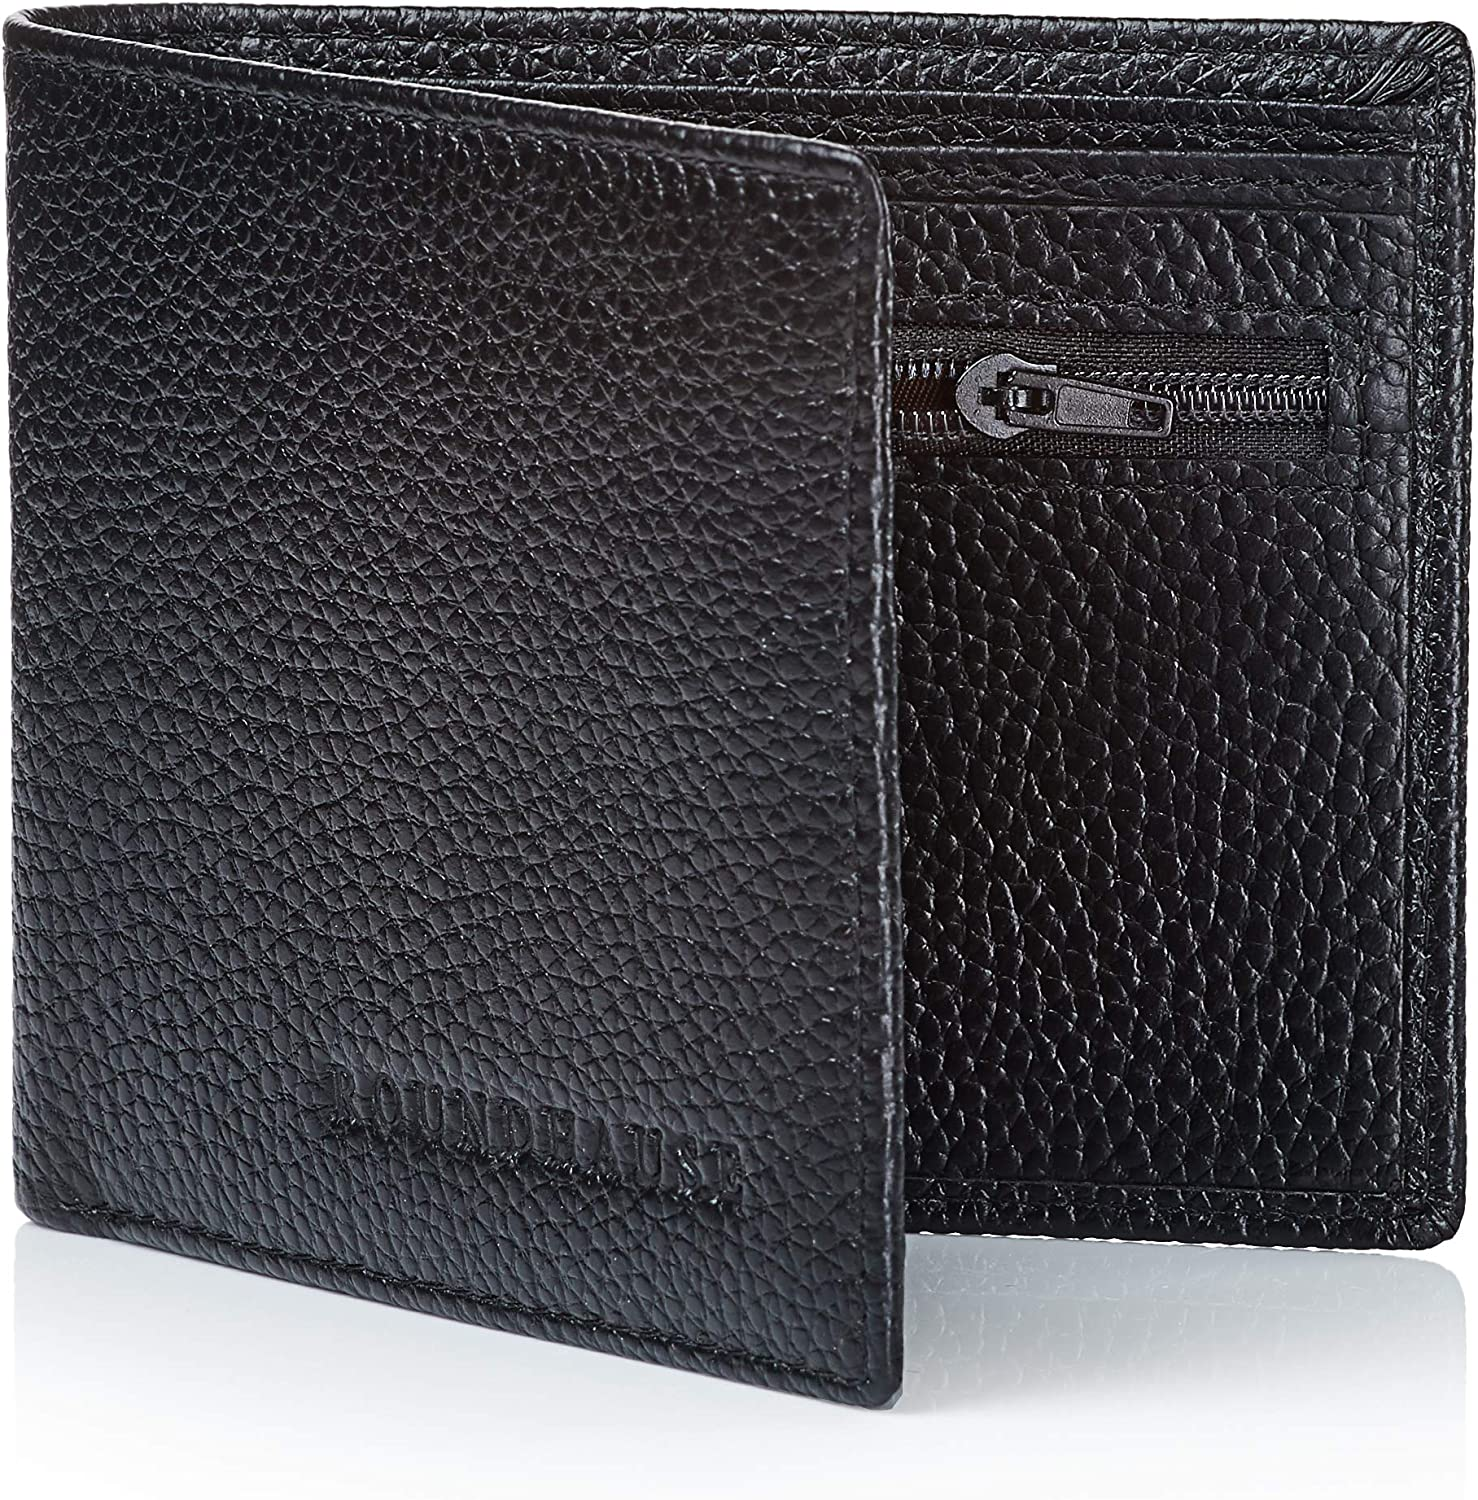 Stylish Men's RFID 100/% Real Carbon Fibre Top Grain Leather Coin ID Card Wallet